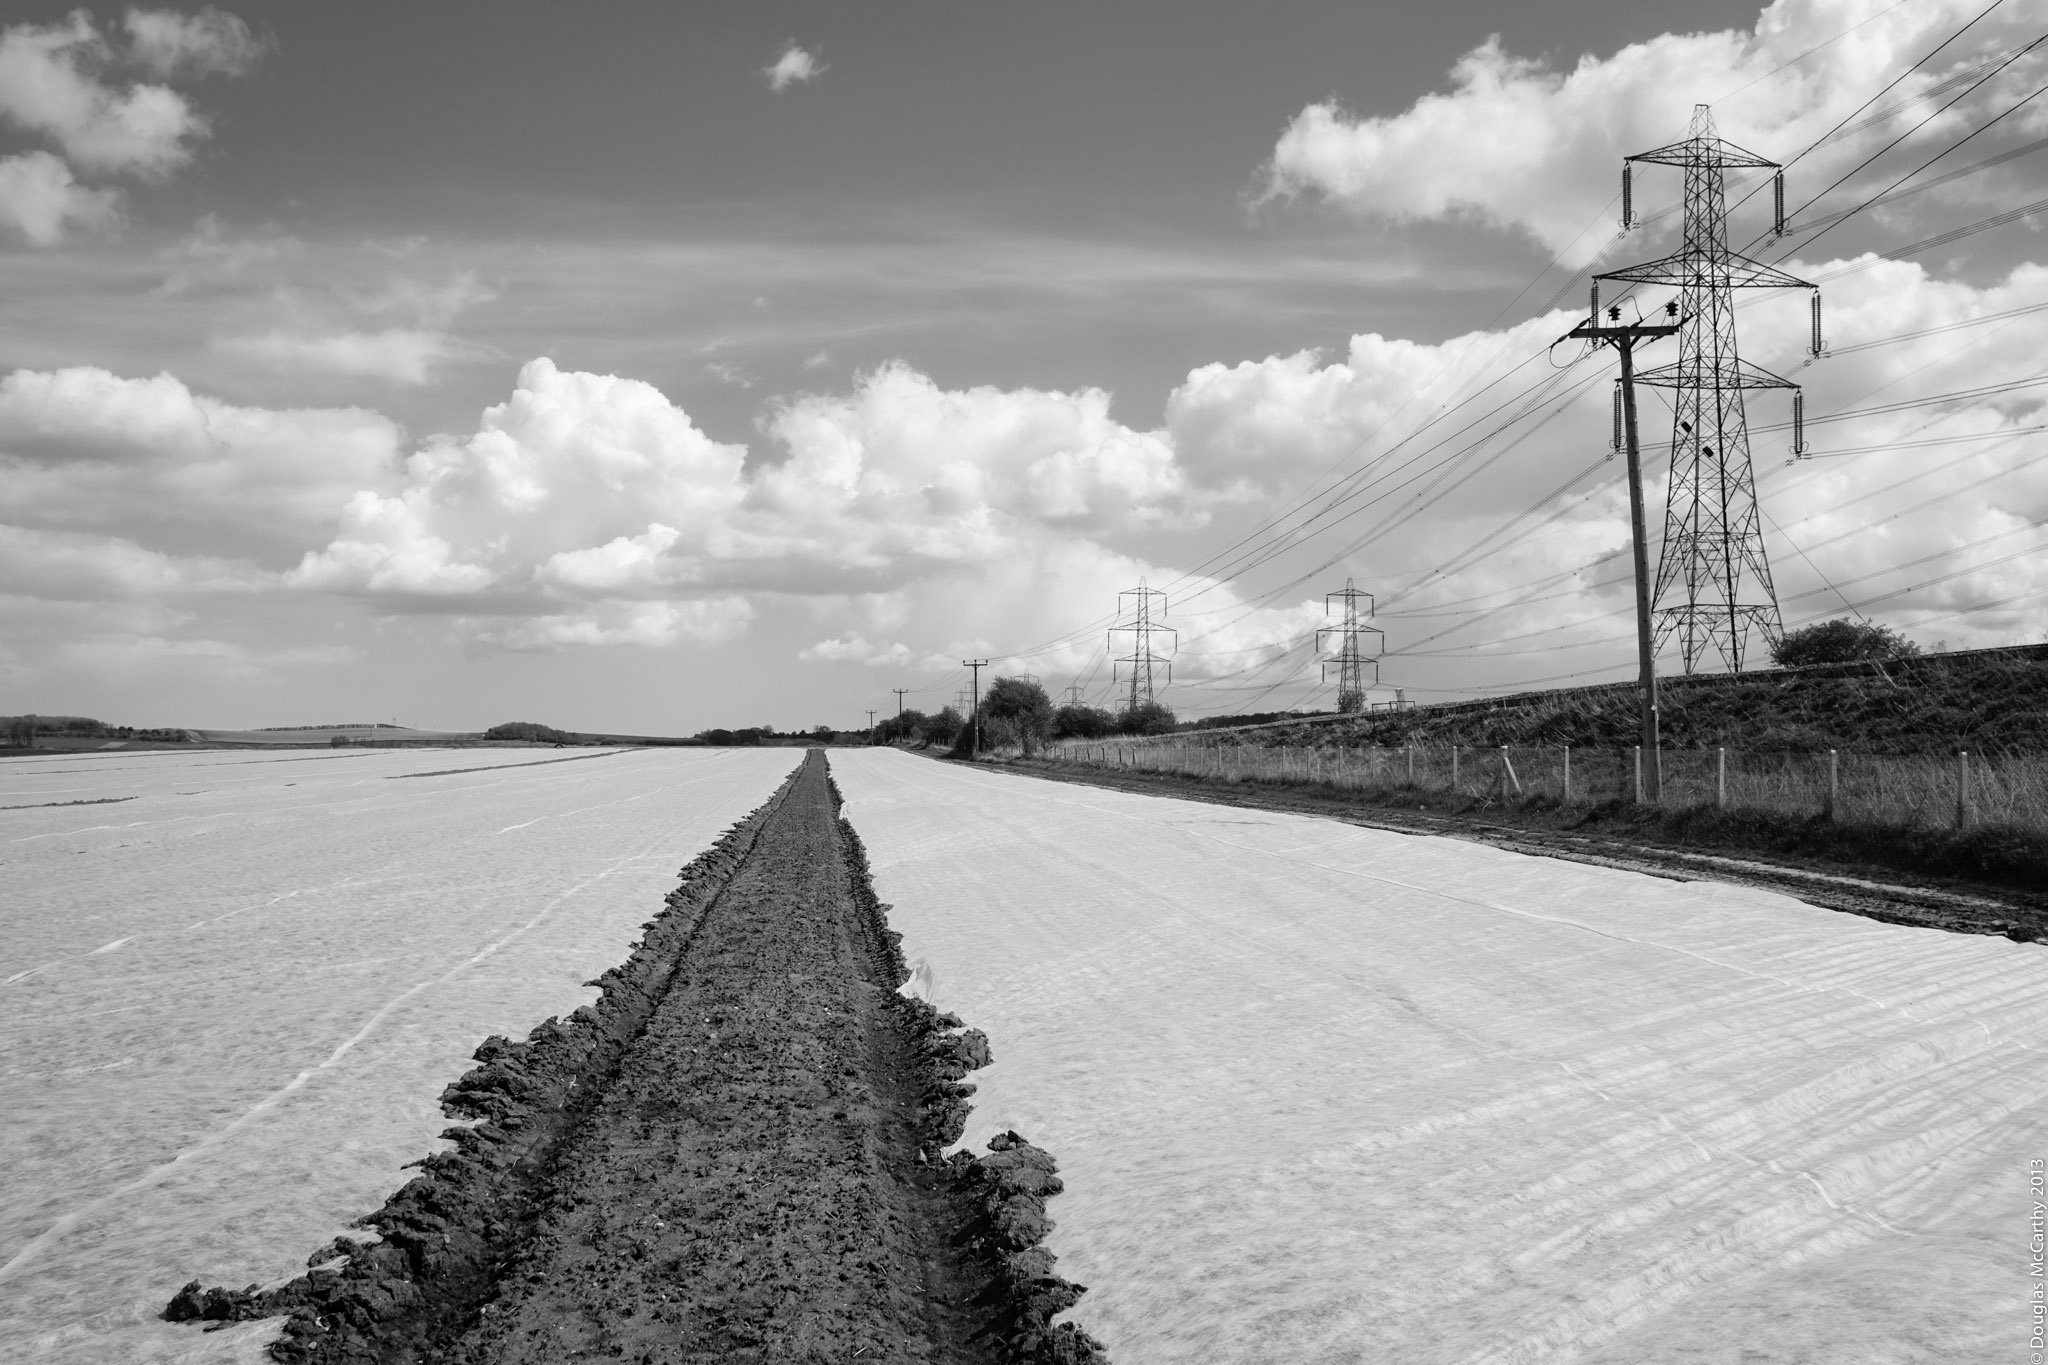 Furrow, Isle of Grain, 2012